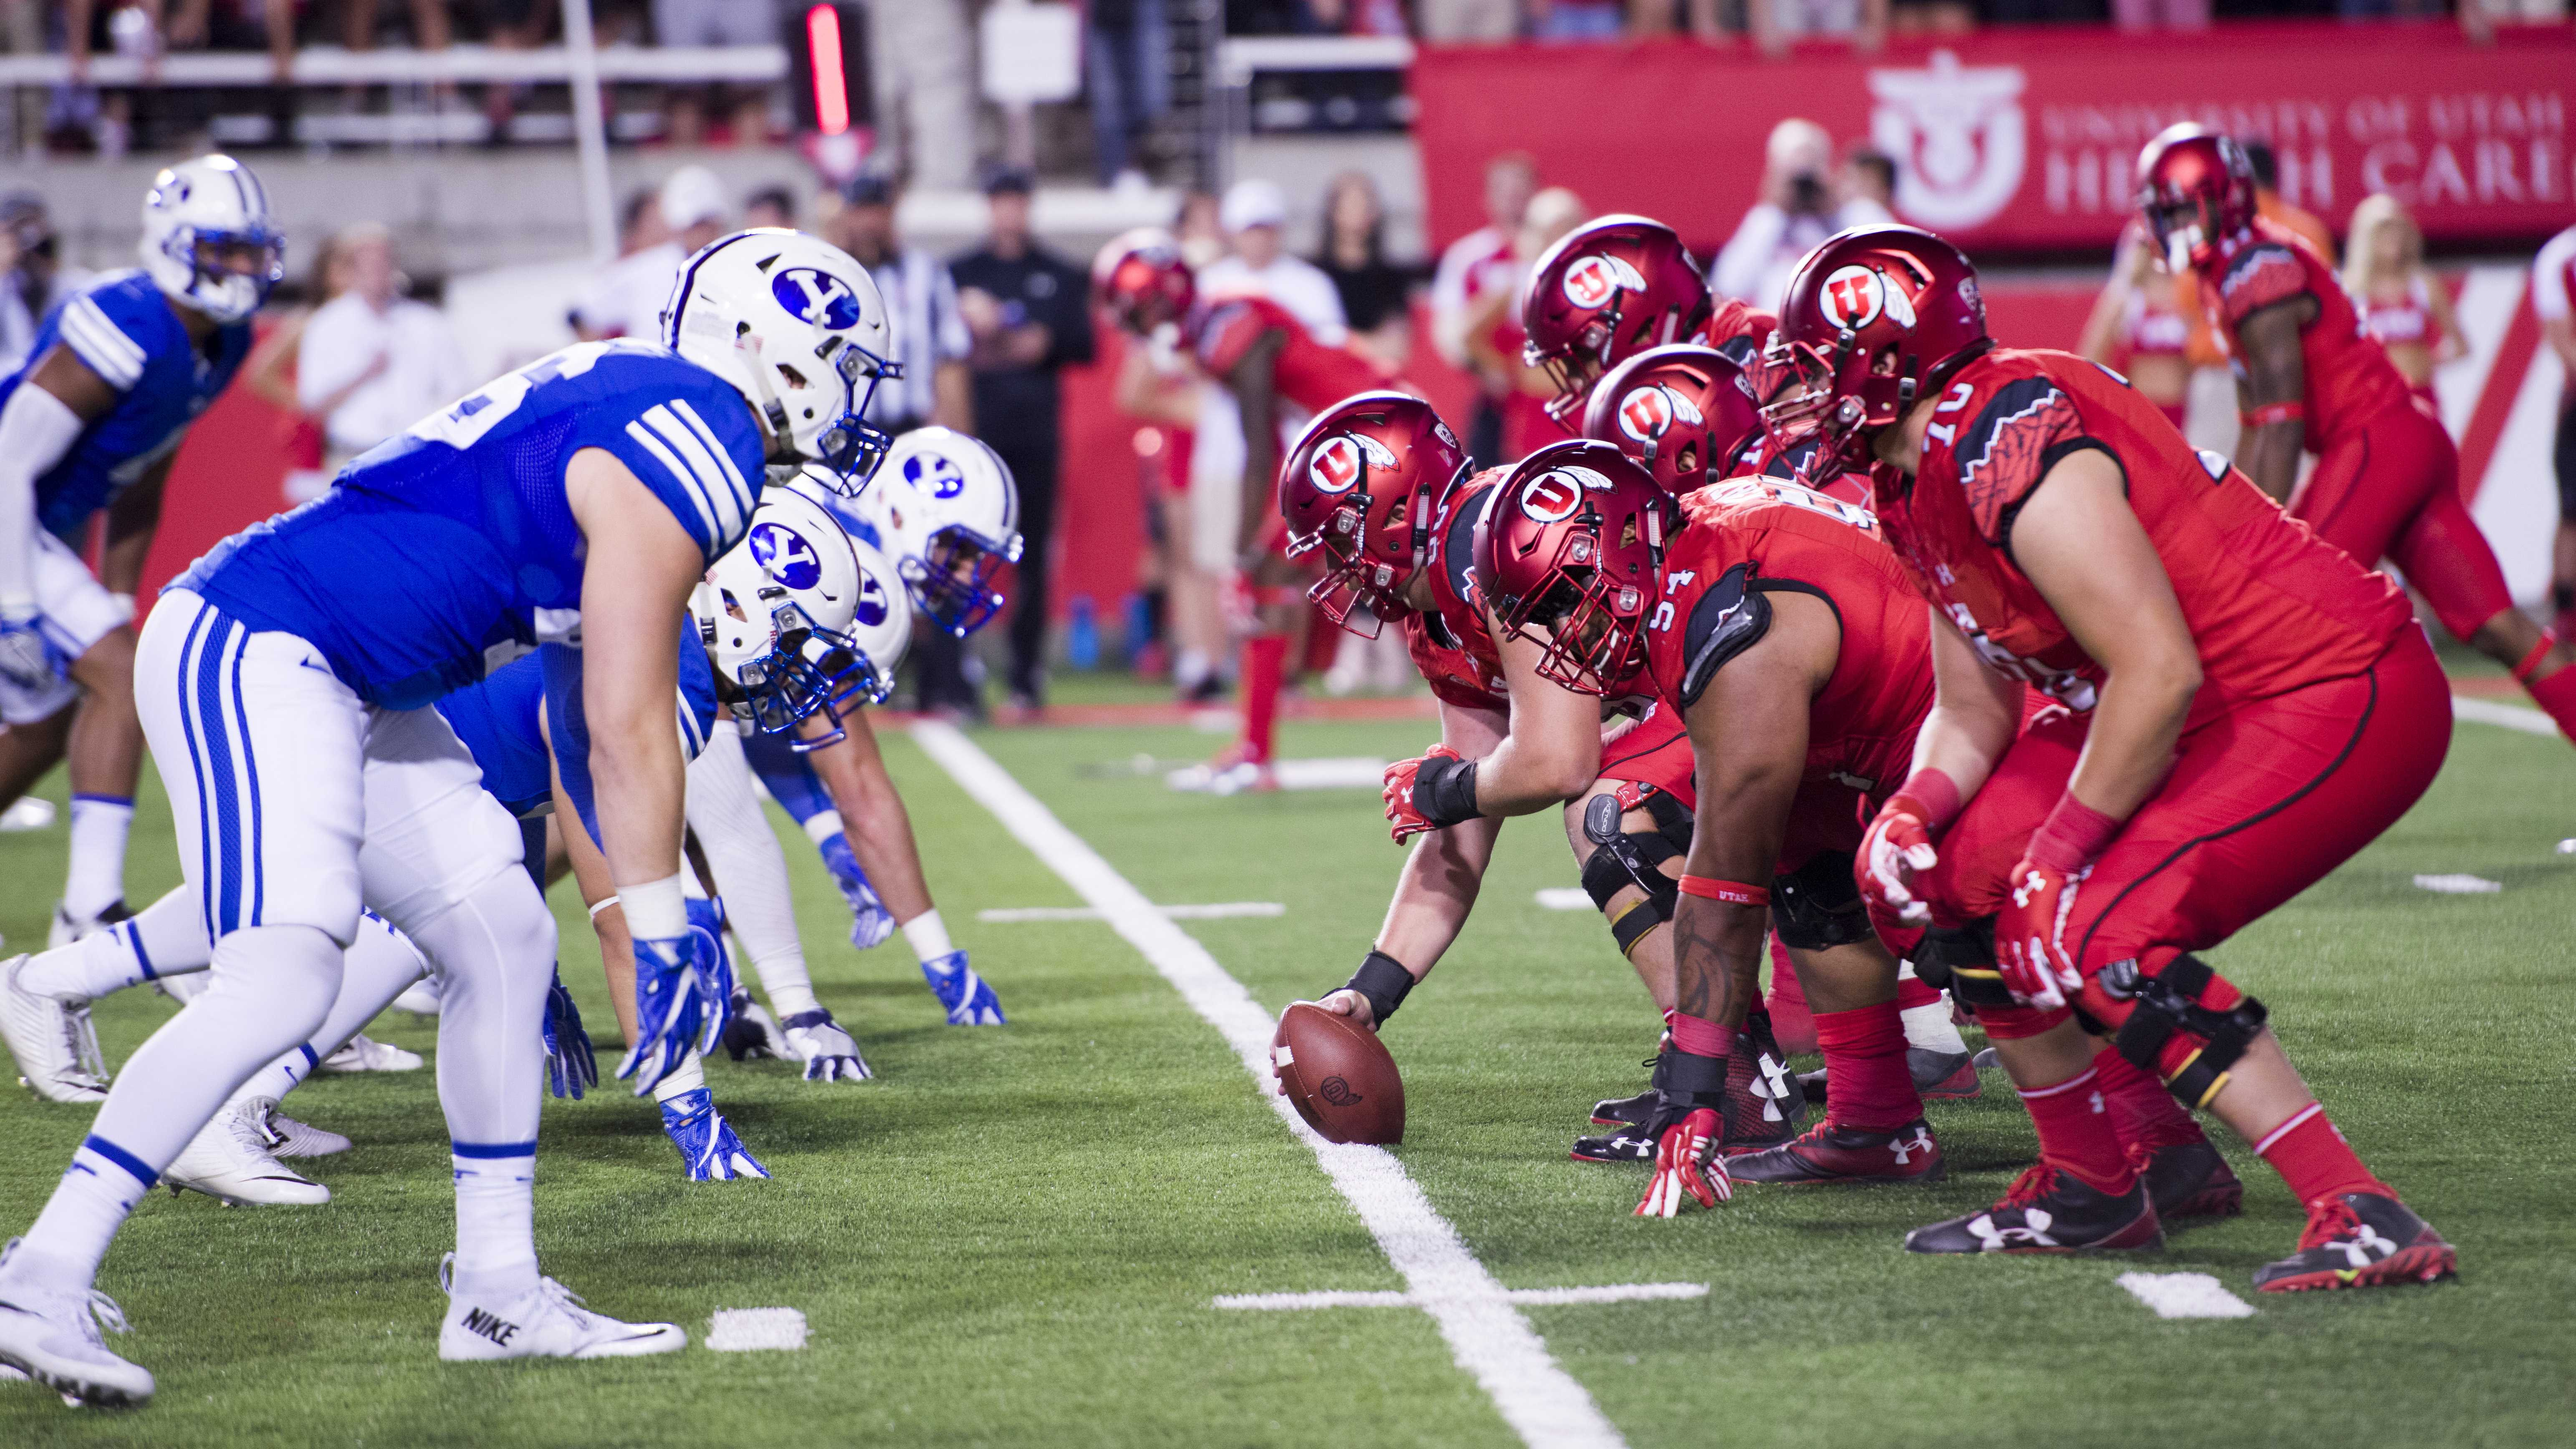 47d1bb3a4 University of Utah Football offense lines up before the snap during the game  vs. the Brigham Young University Cougars at Rice-Eccles Stadium on  Saturday